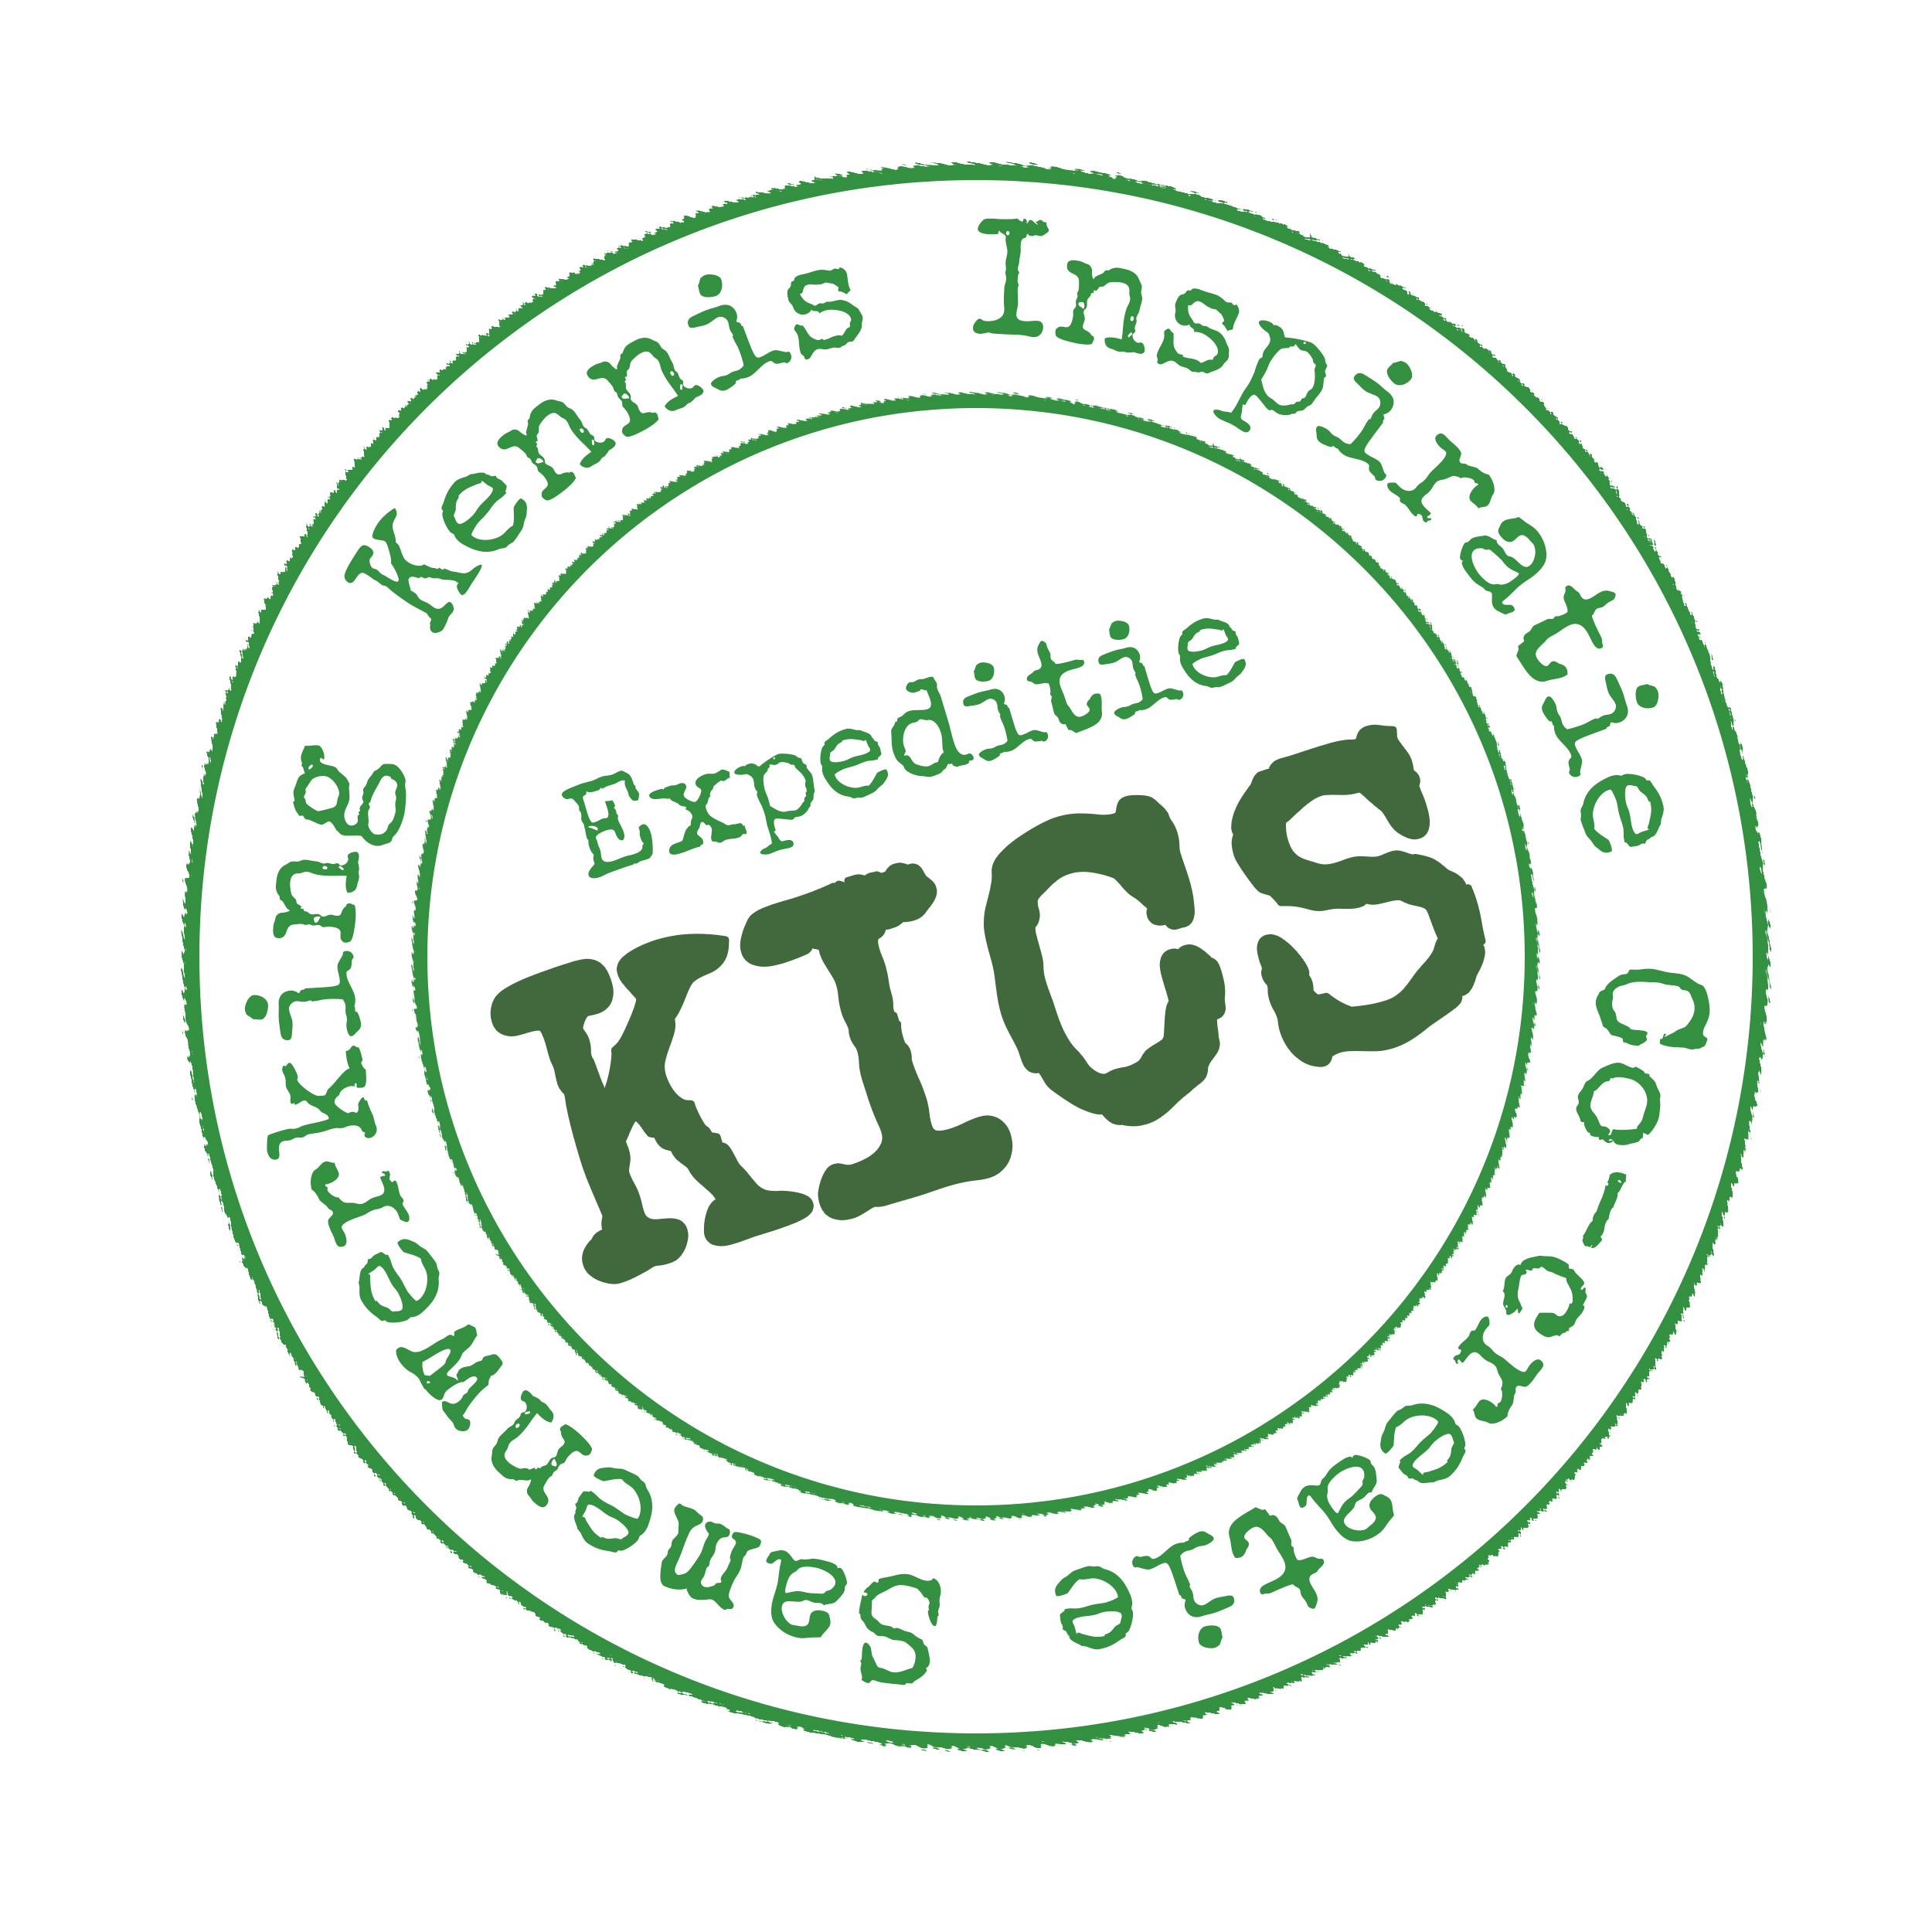 Expeditie KICS